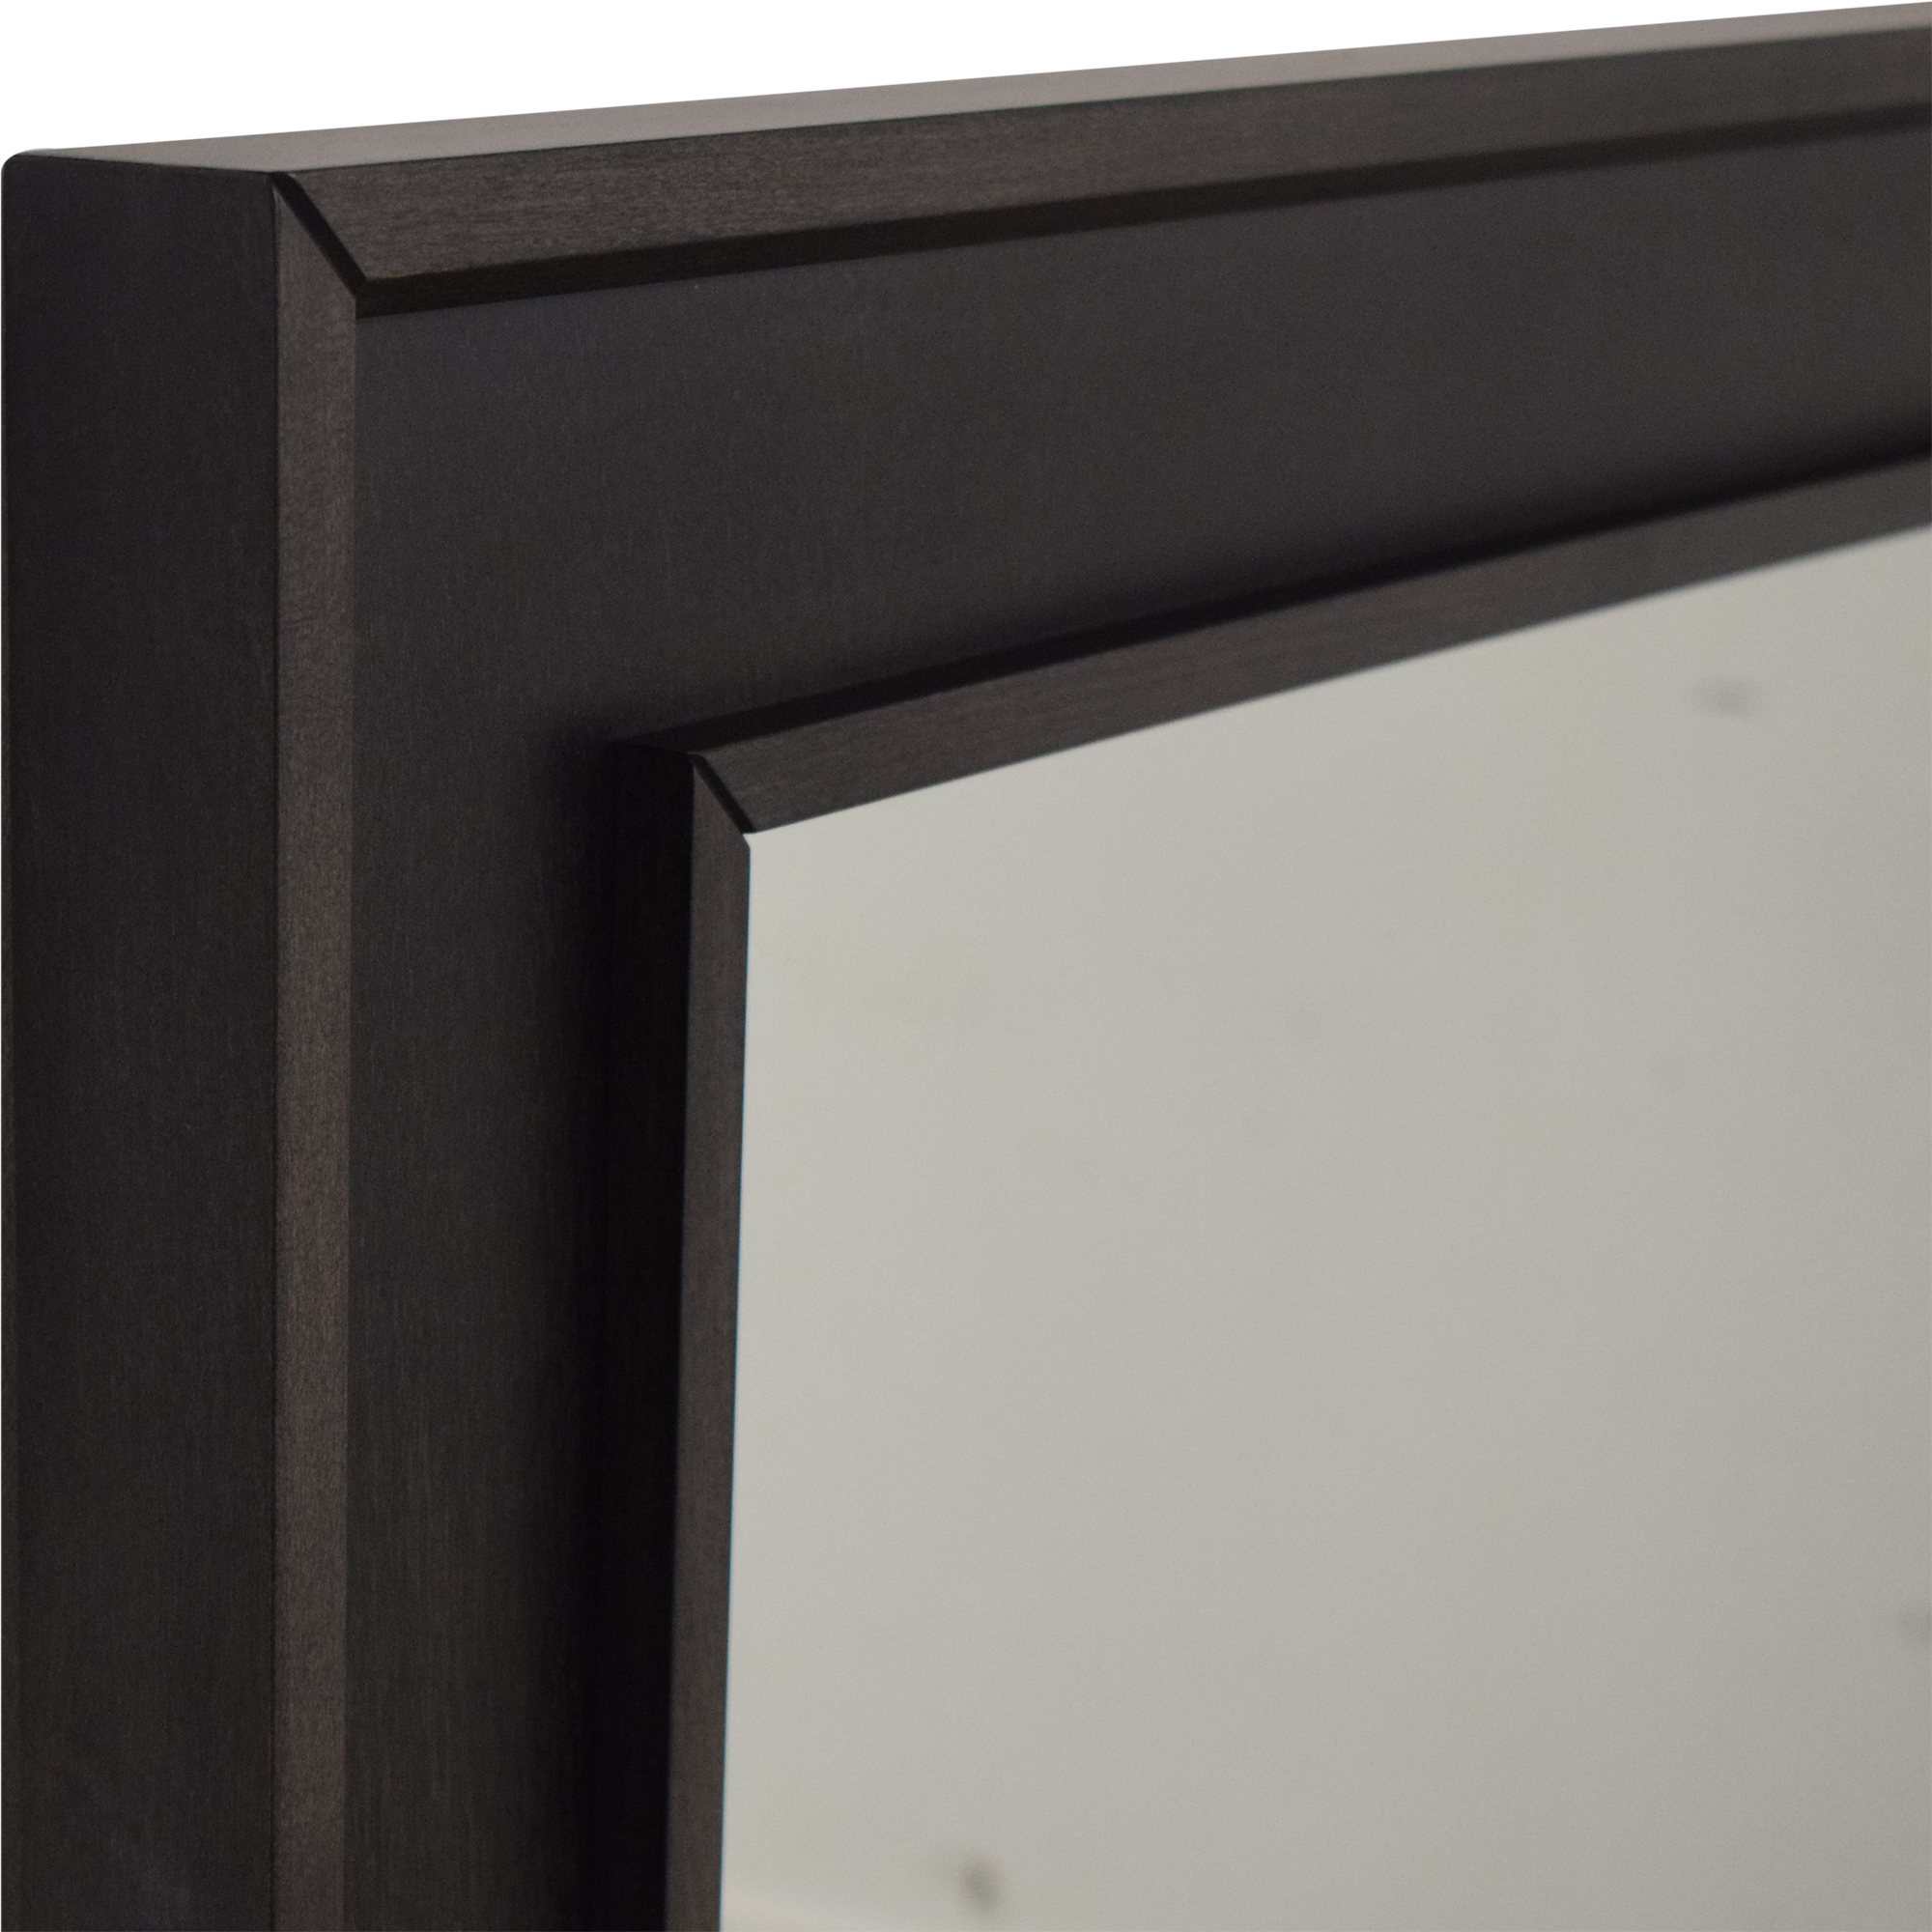 Crate & Barrel Framed Wall Mirror Crate & Barrel